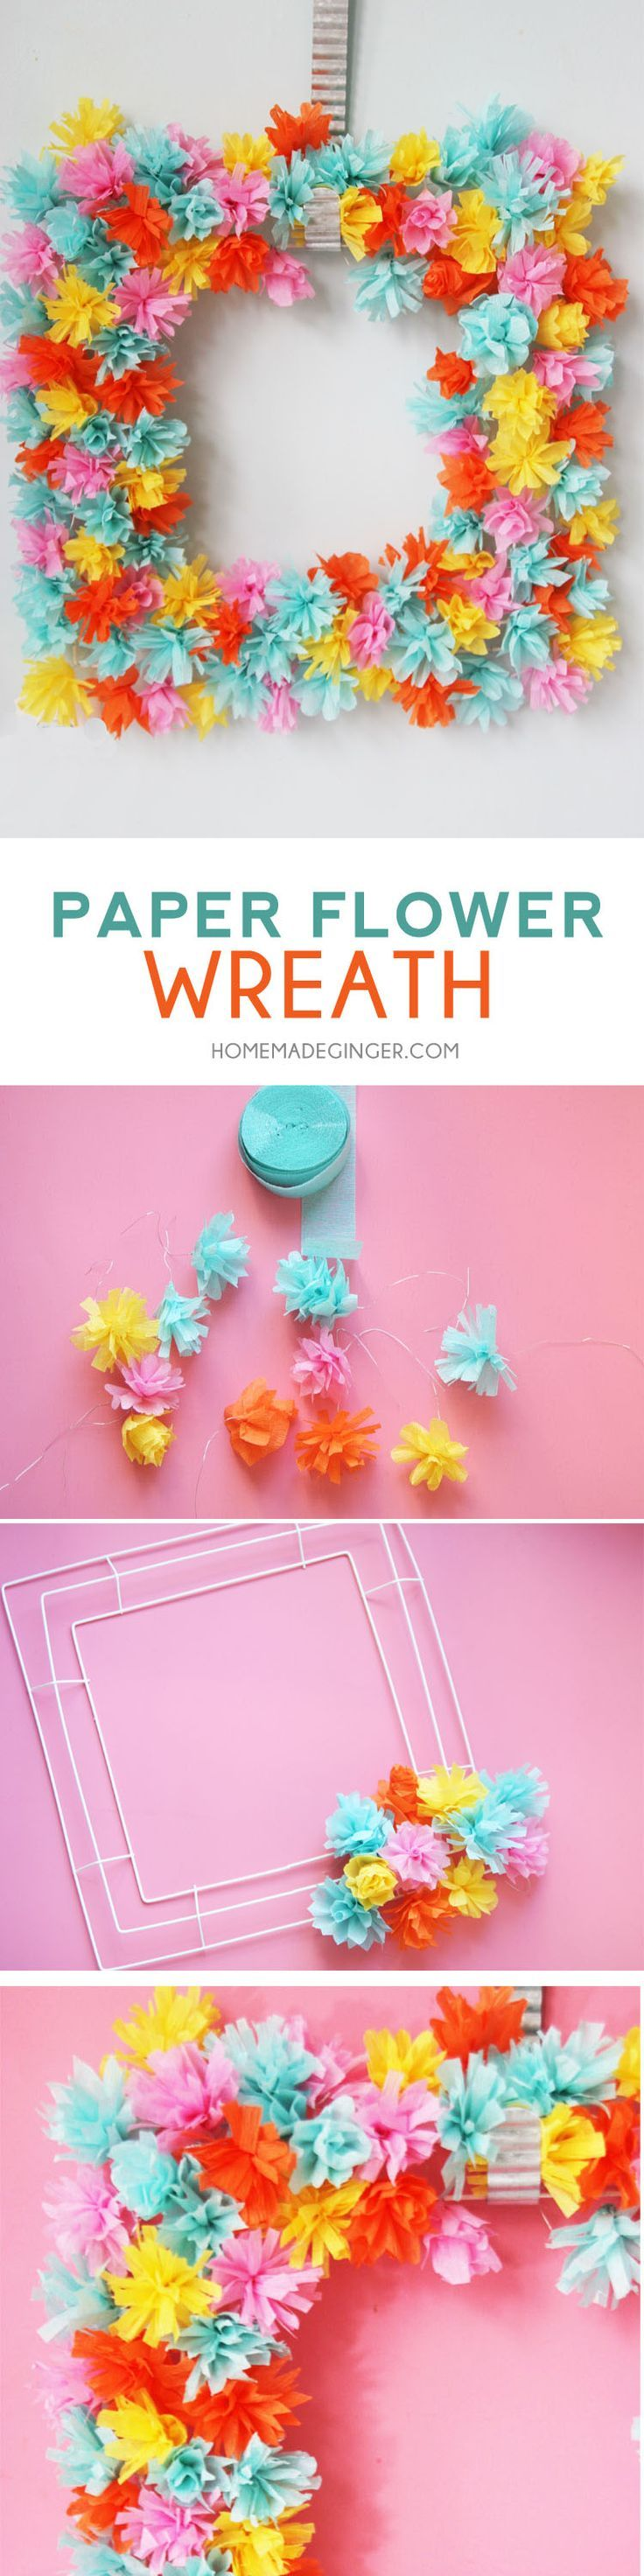 Diy paper flower wreath ruffled - Make A Beautiful Paper Flower Wreath Out Of Crepe Paper This Is The Perfect Diy